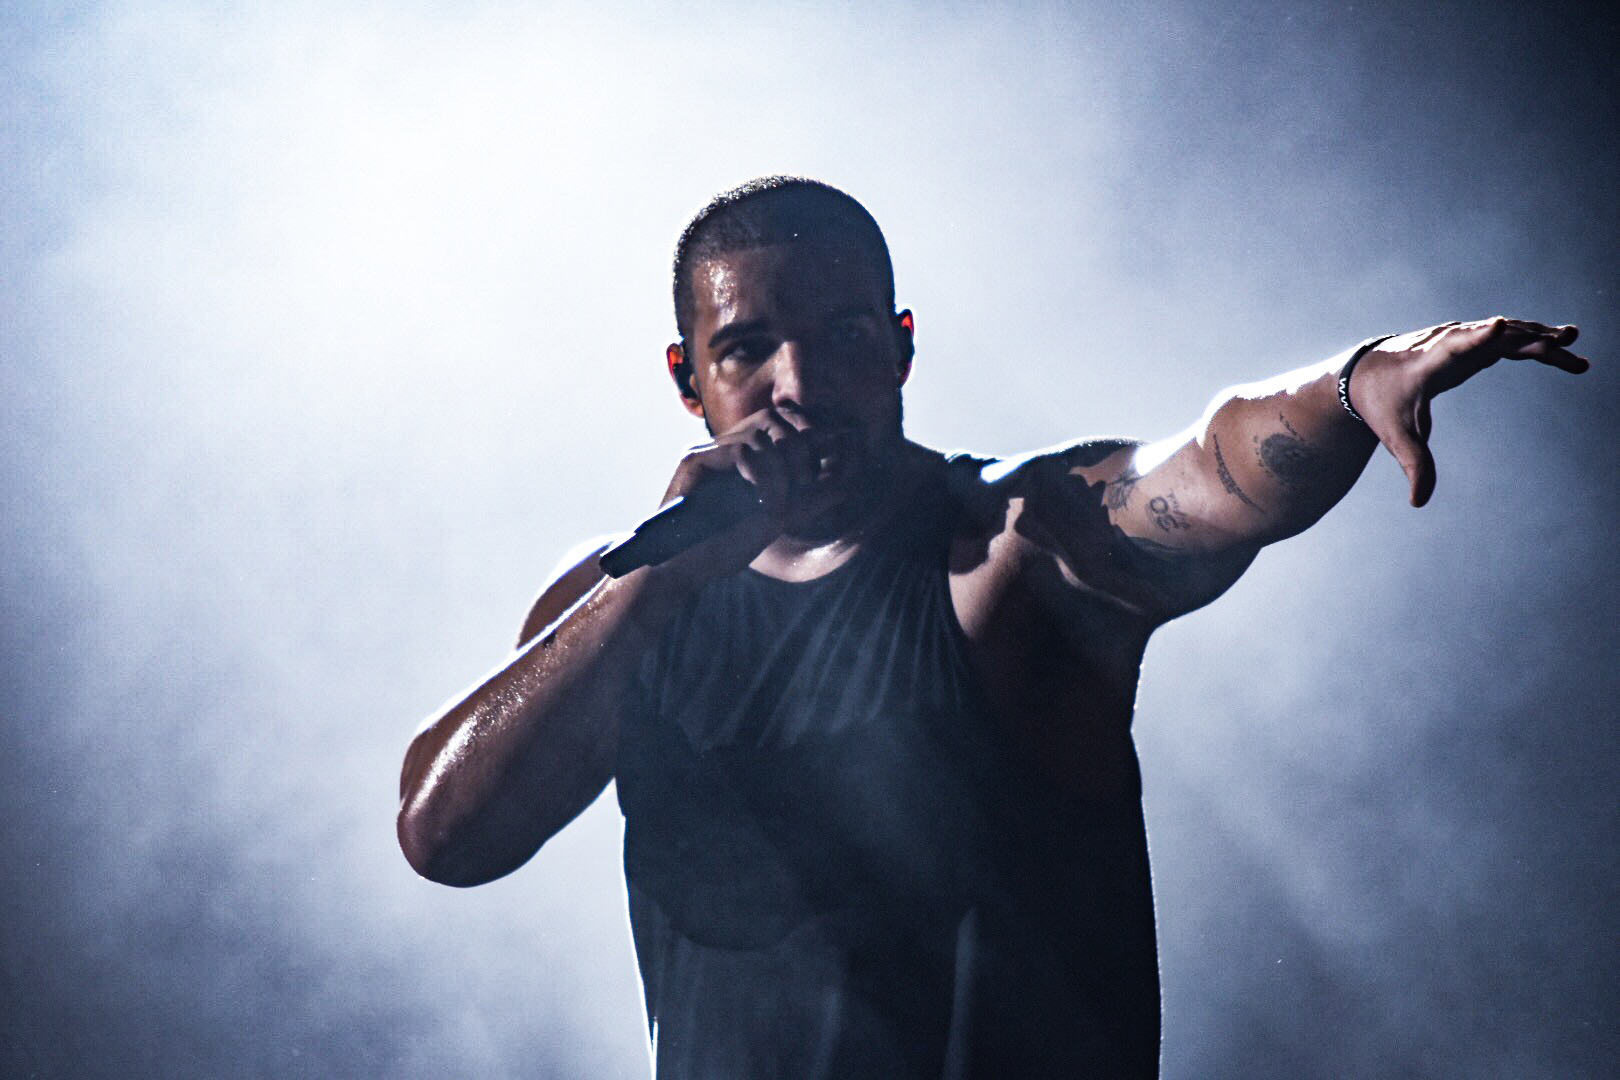 04 - Drake Performs at Glasgow's SSE Hydro as part of The Boy Meets Word Tour - 23-03-17 - Picture By - Calum Buchan Photography.jpg